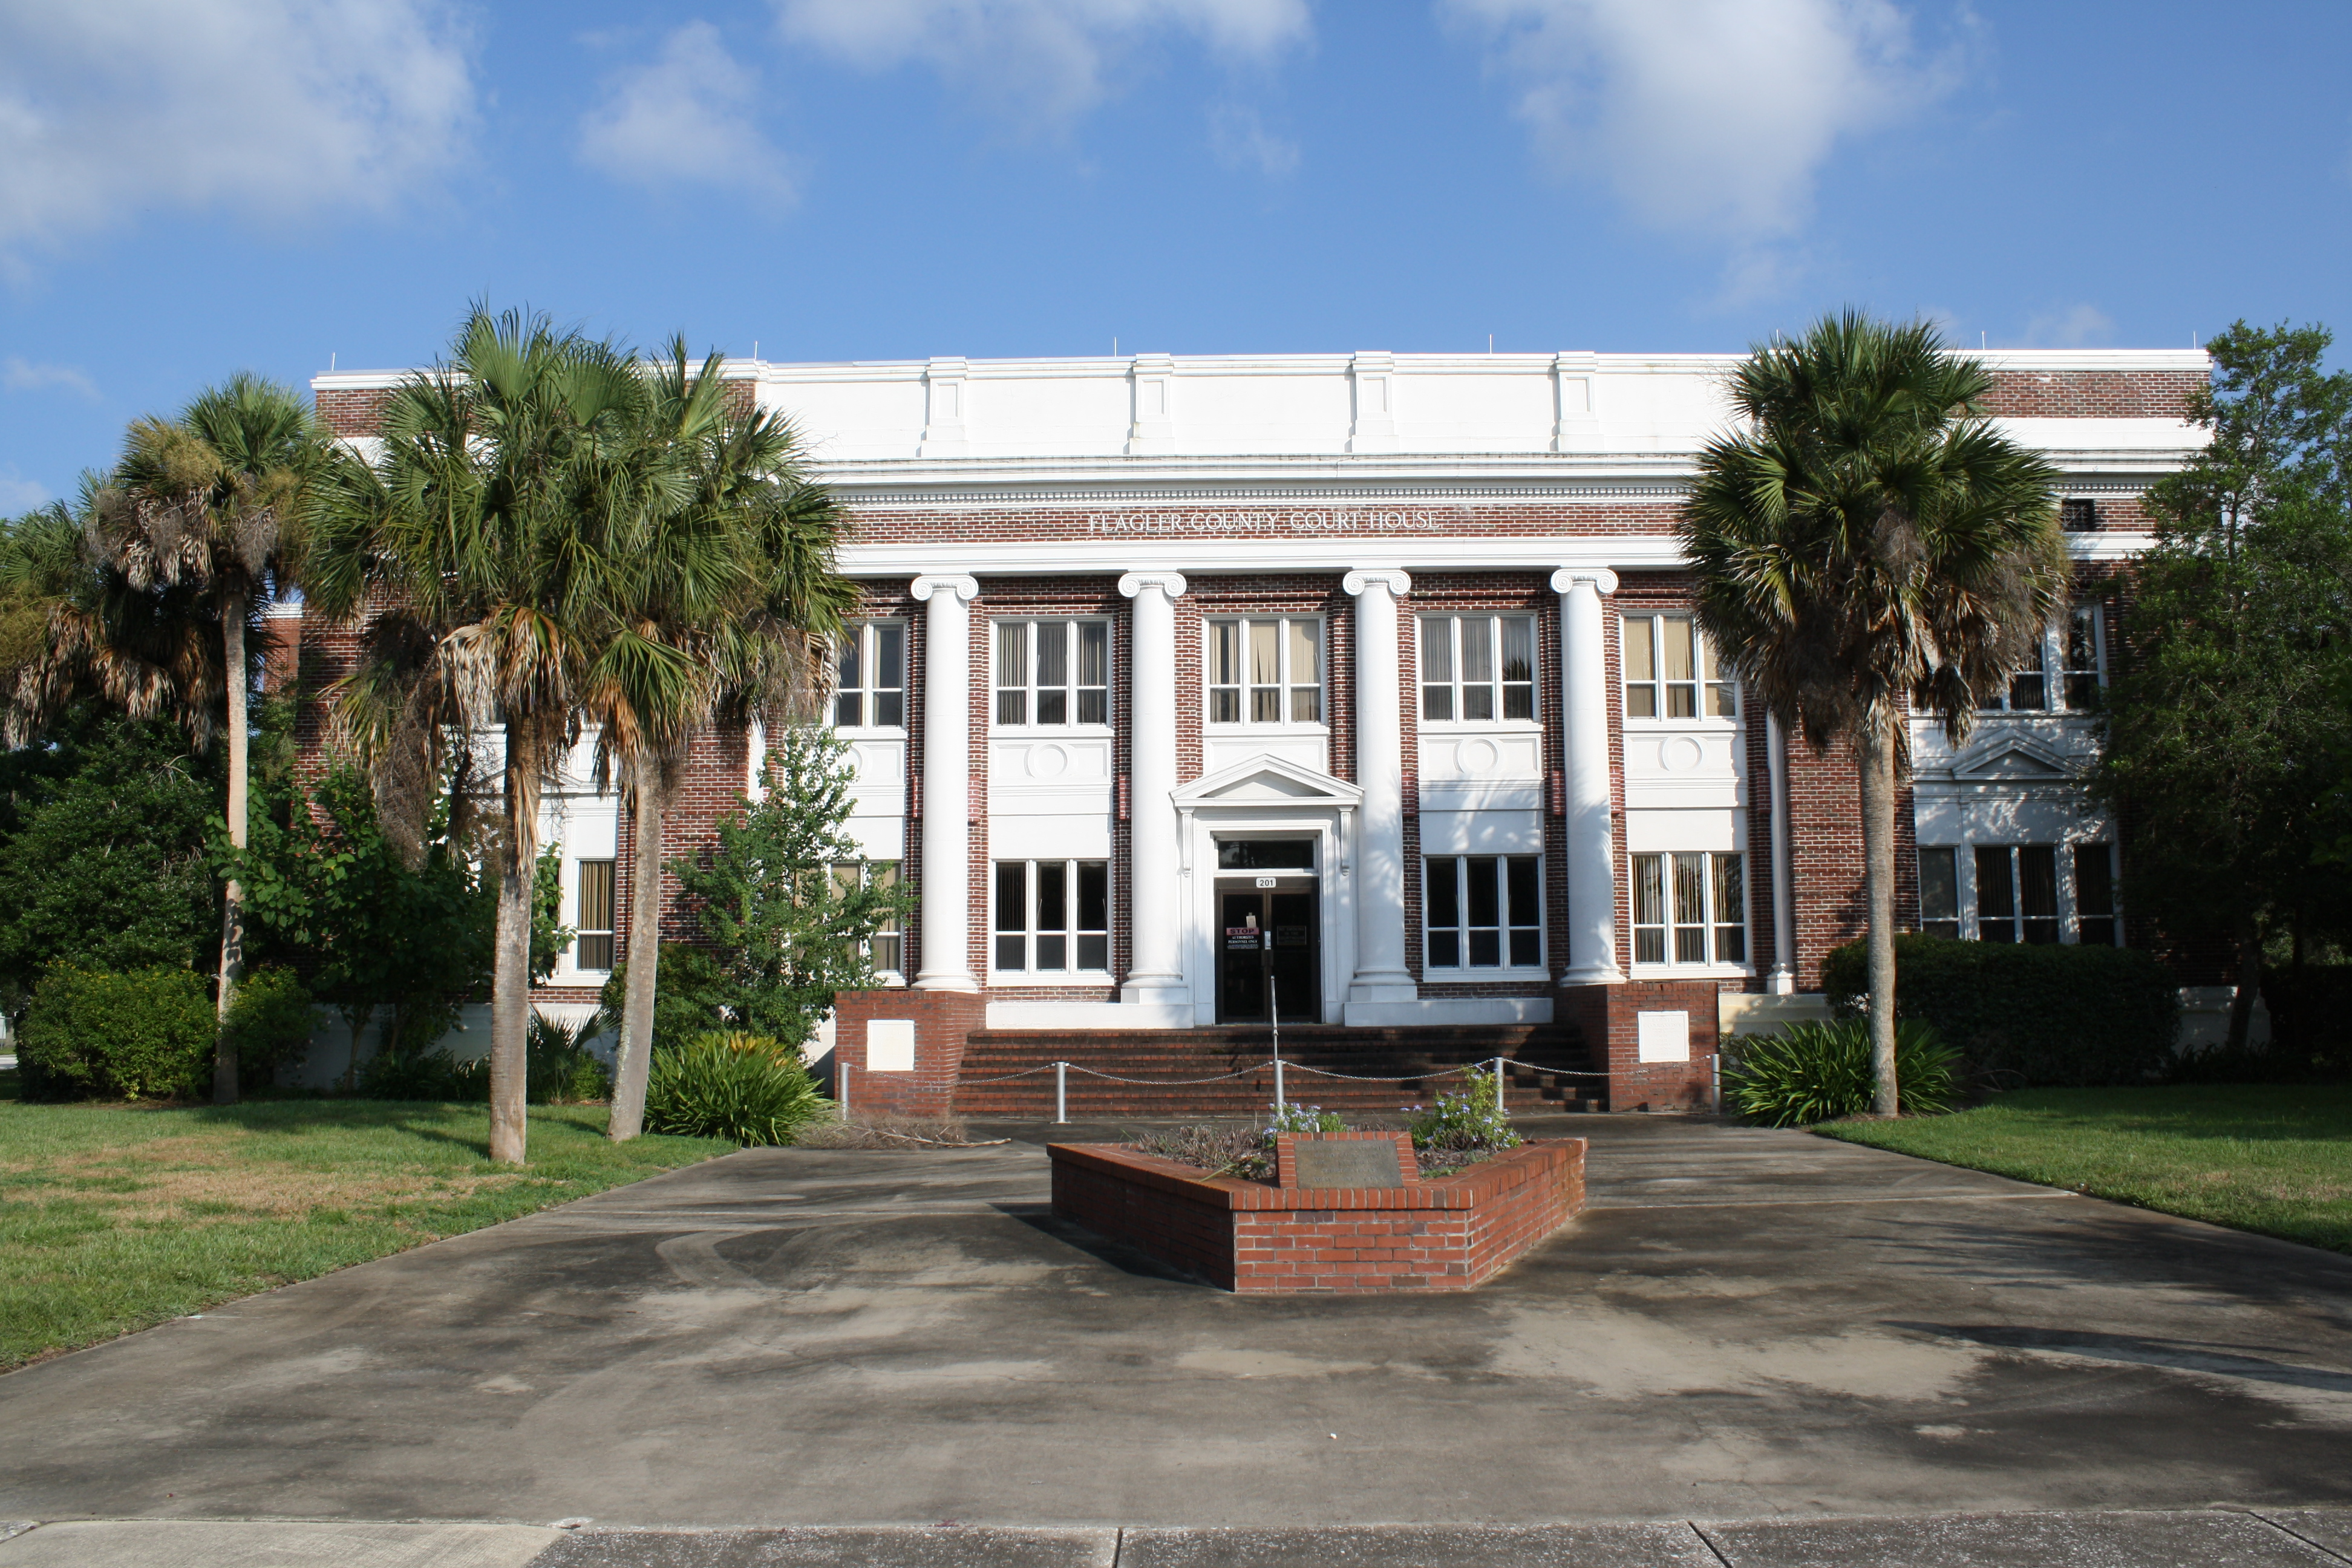 File Bunnell Fl Courthouse Flagler County 08 08 2010